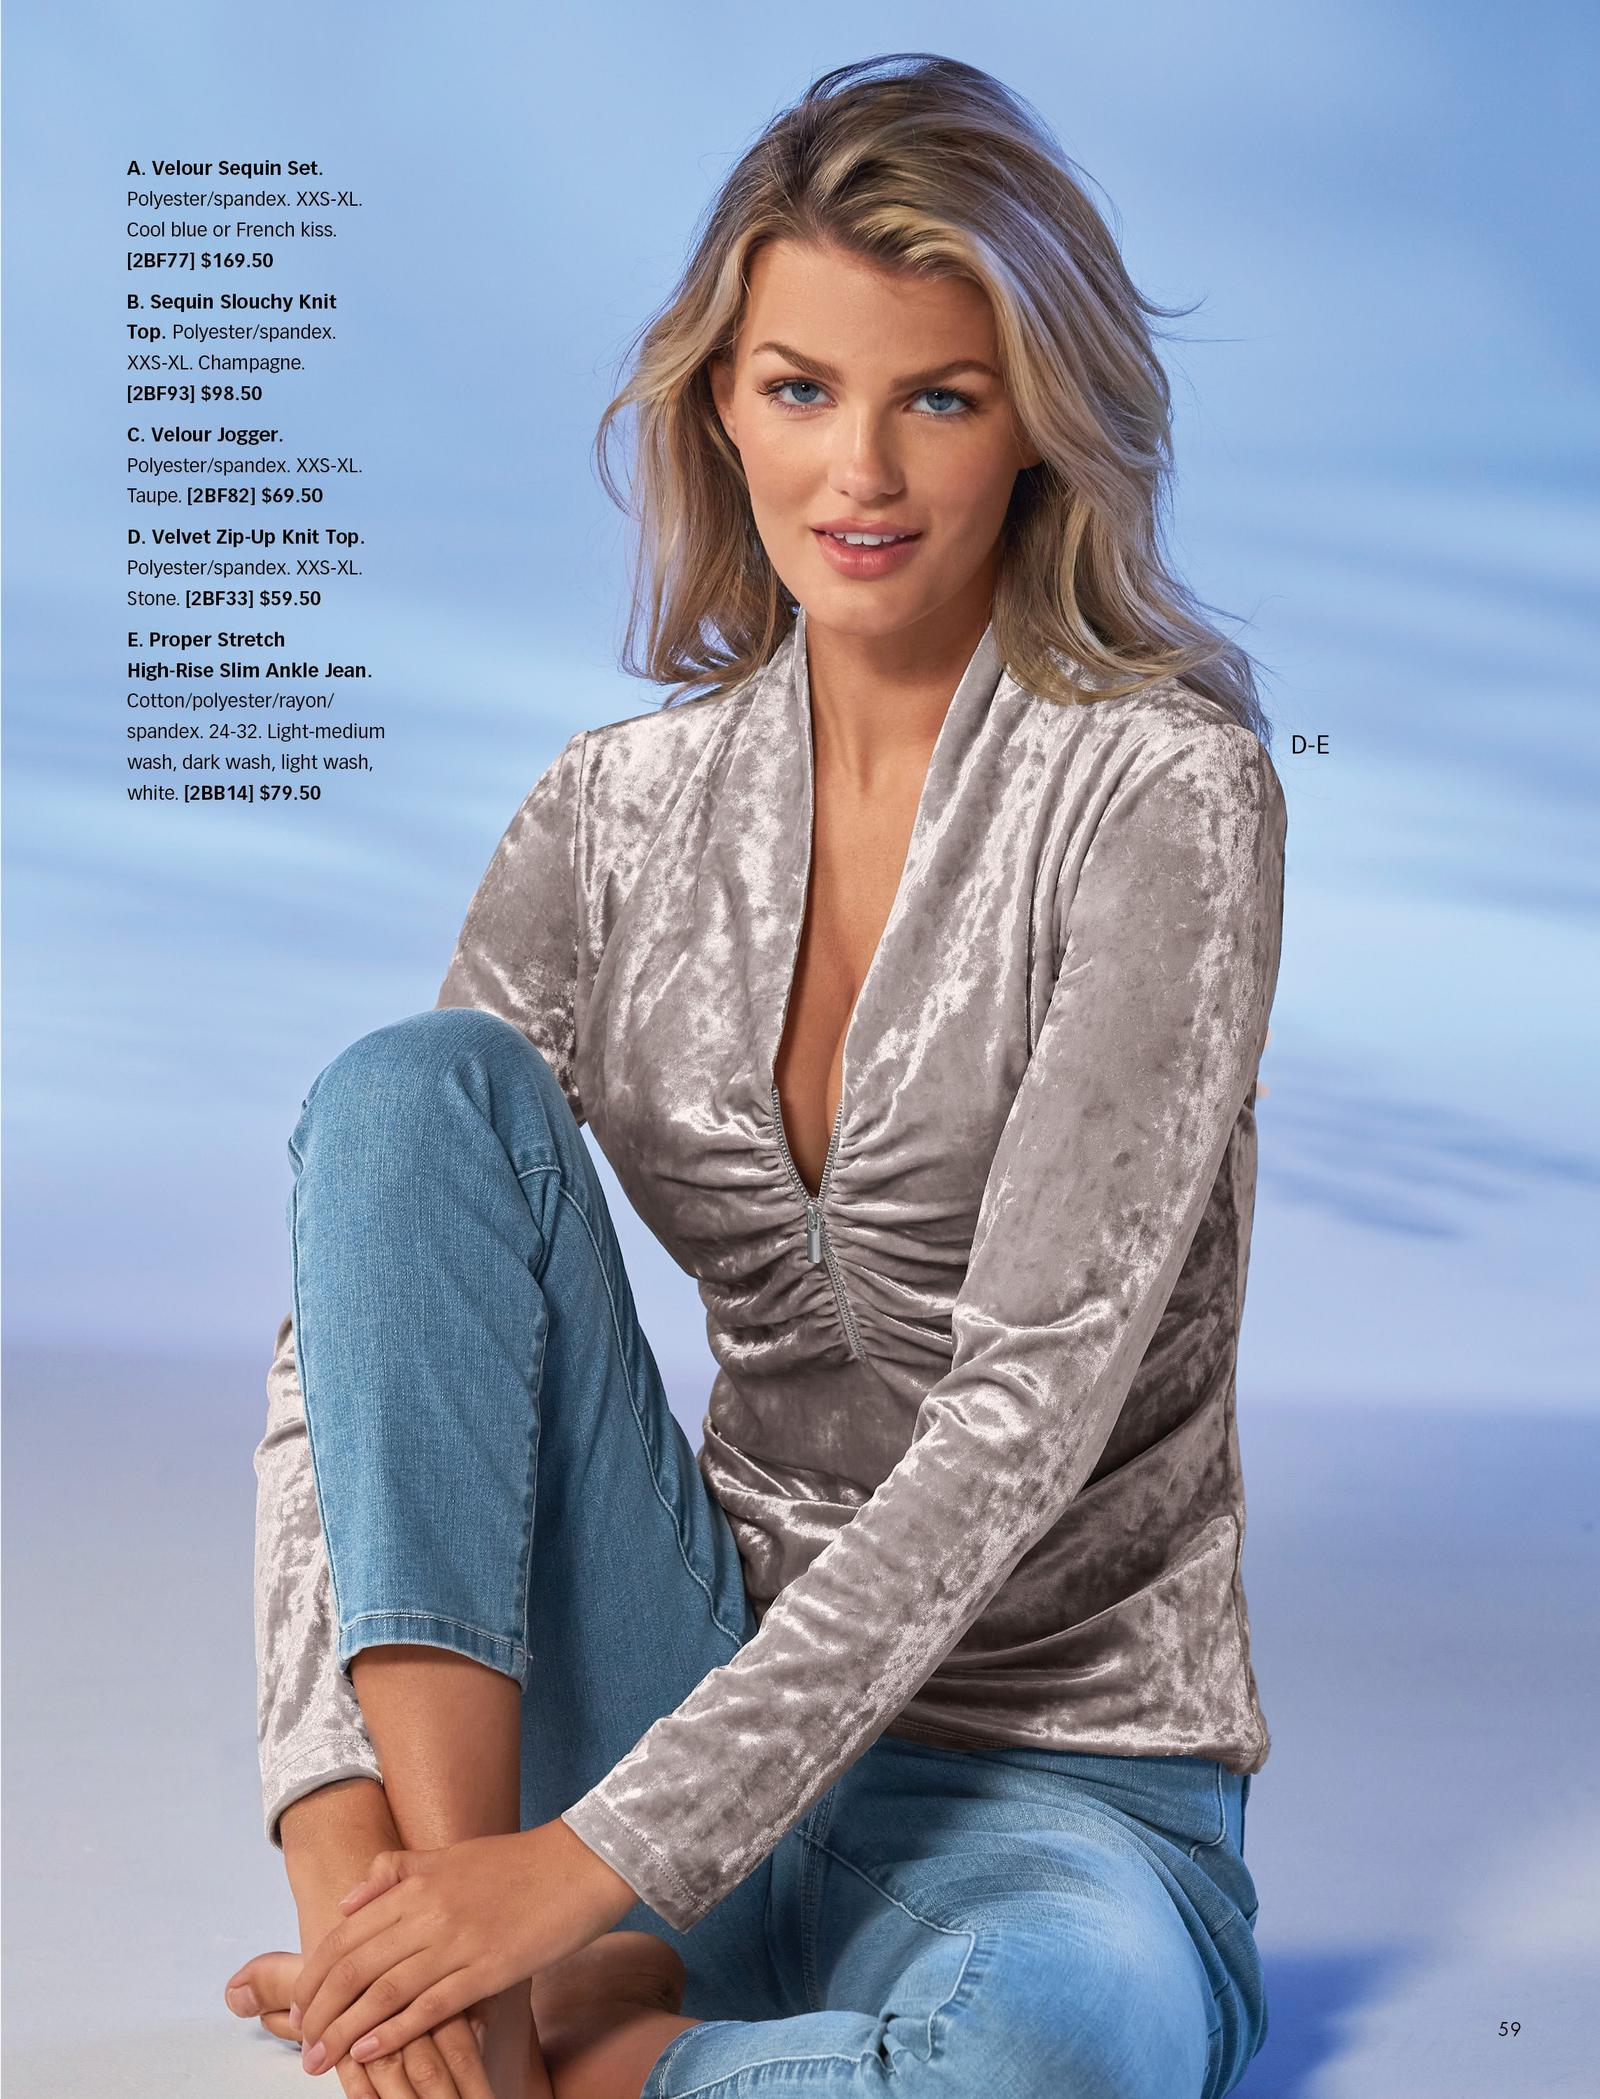 model wearing a velvet zip-up long-sleeve top and light wash jeans.